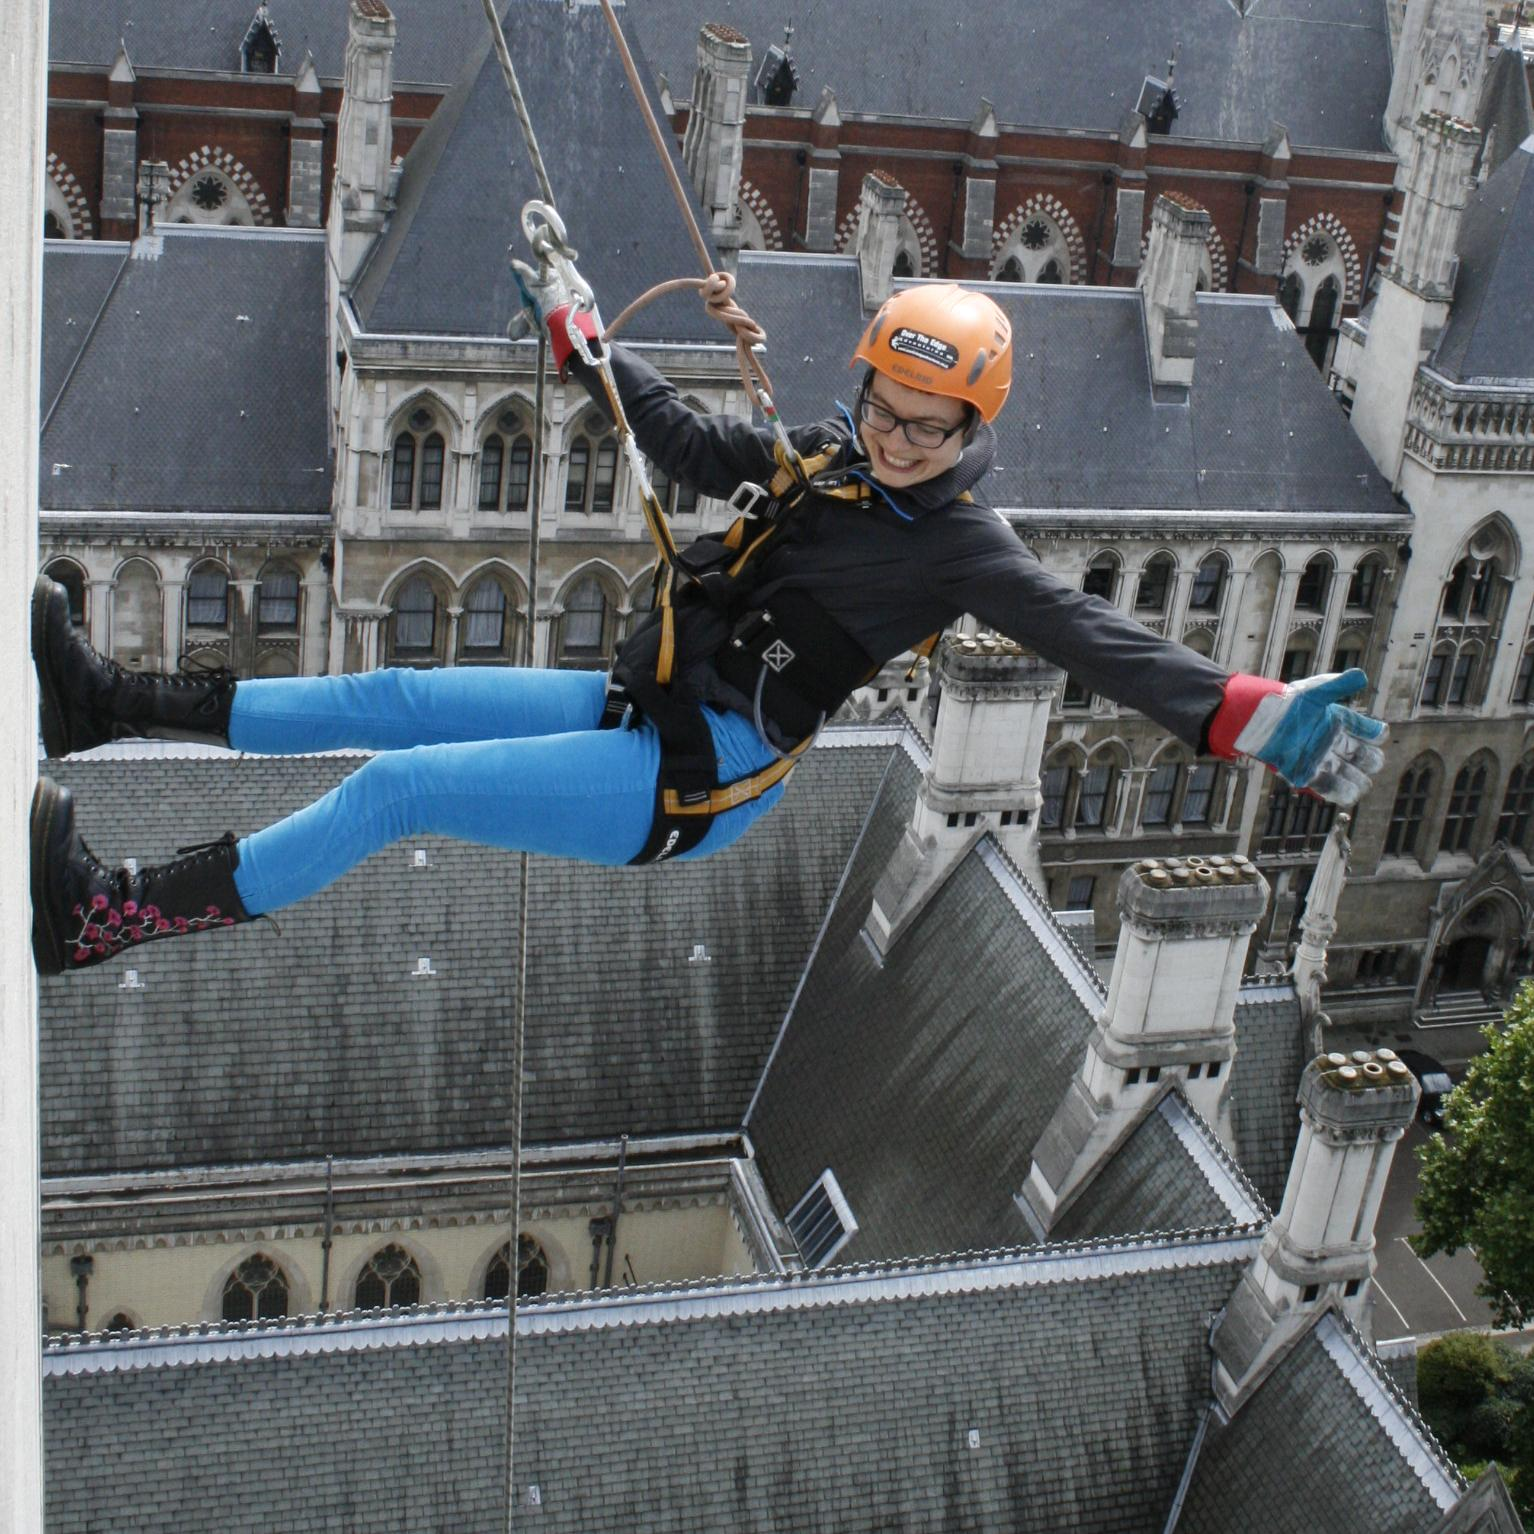 A young woman abseiling down a building in London.